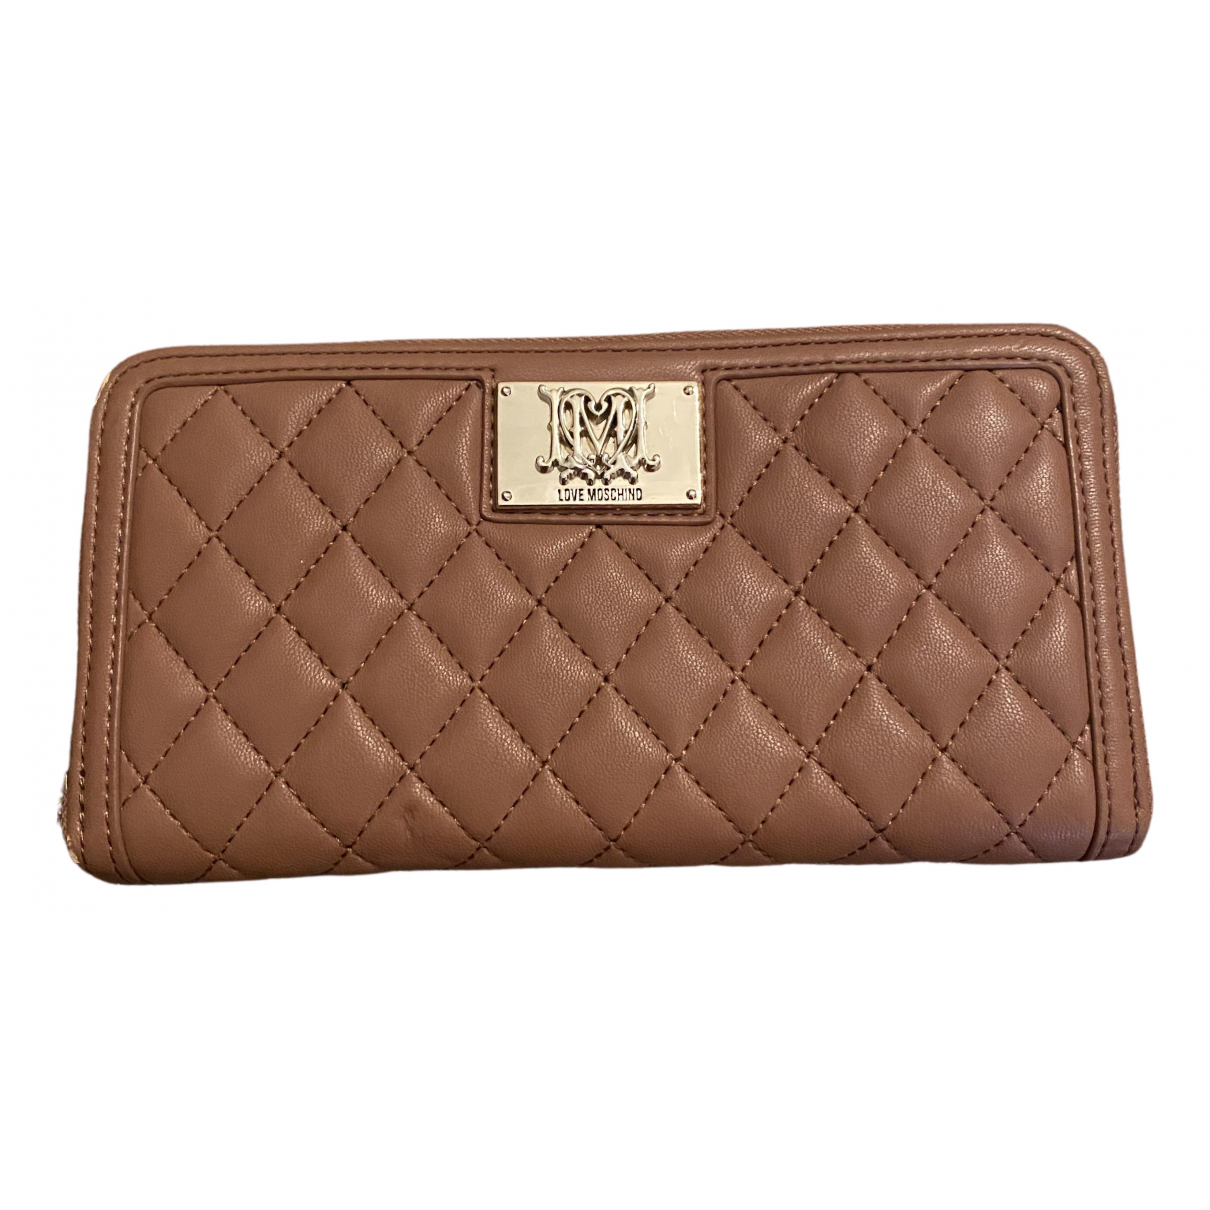 Moschino \N Brown Leather wallet for Women \N